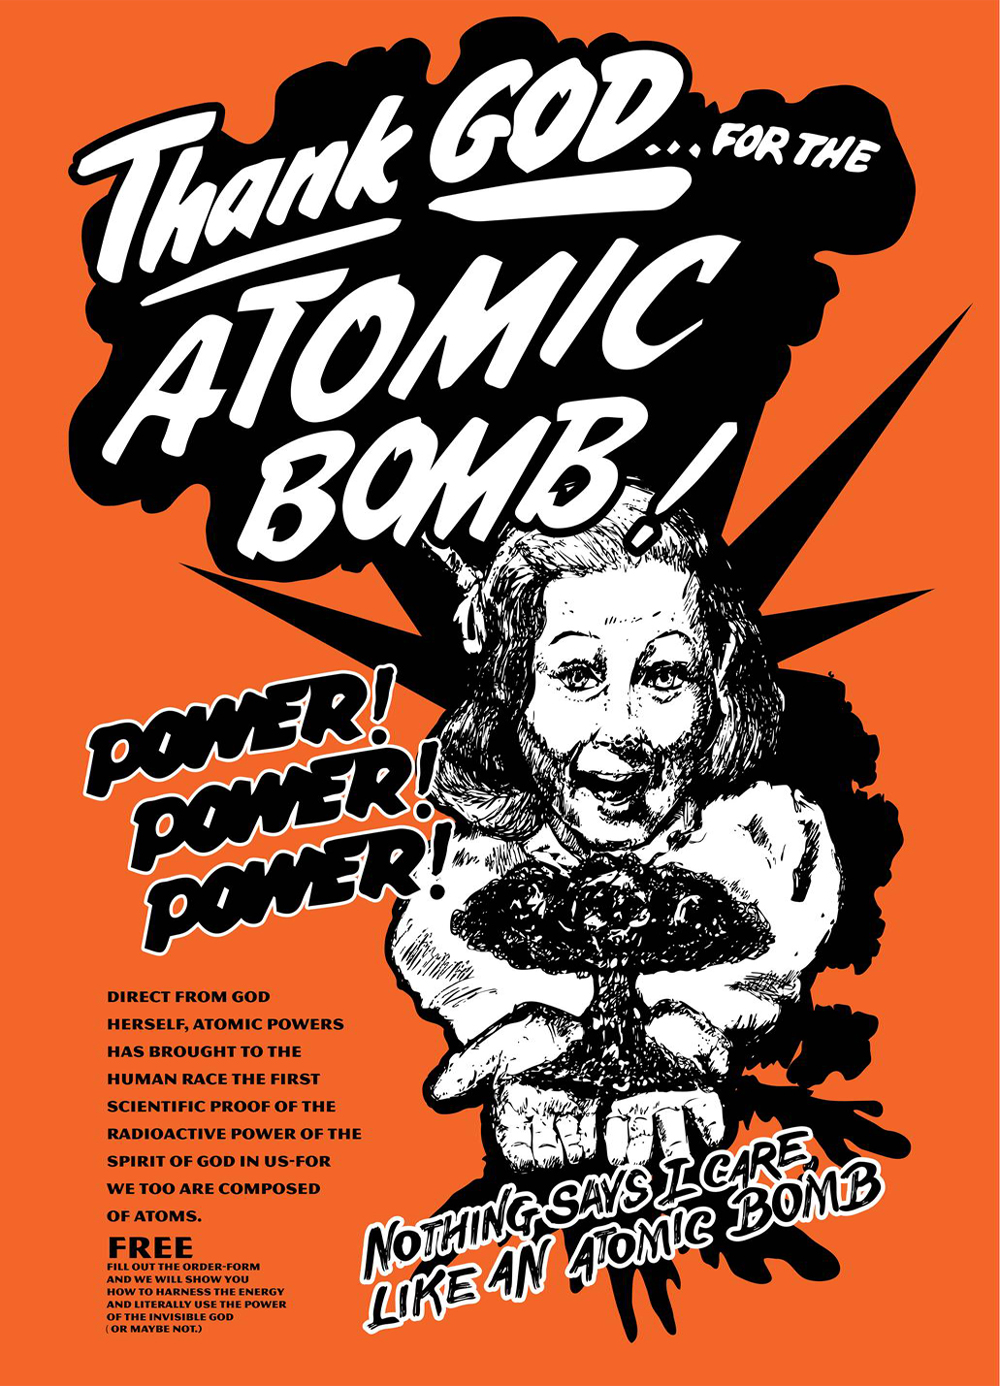 Anti nuclear bombs poster Thanks God for the Atomic Bomb